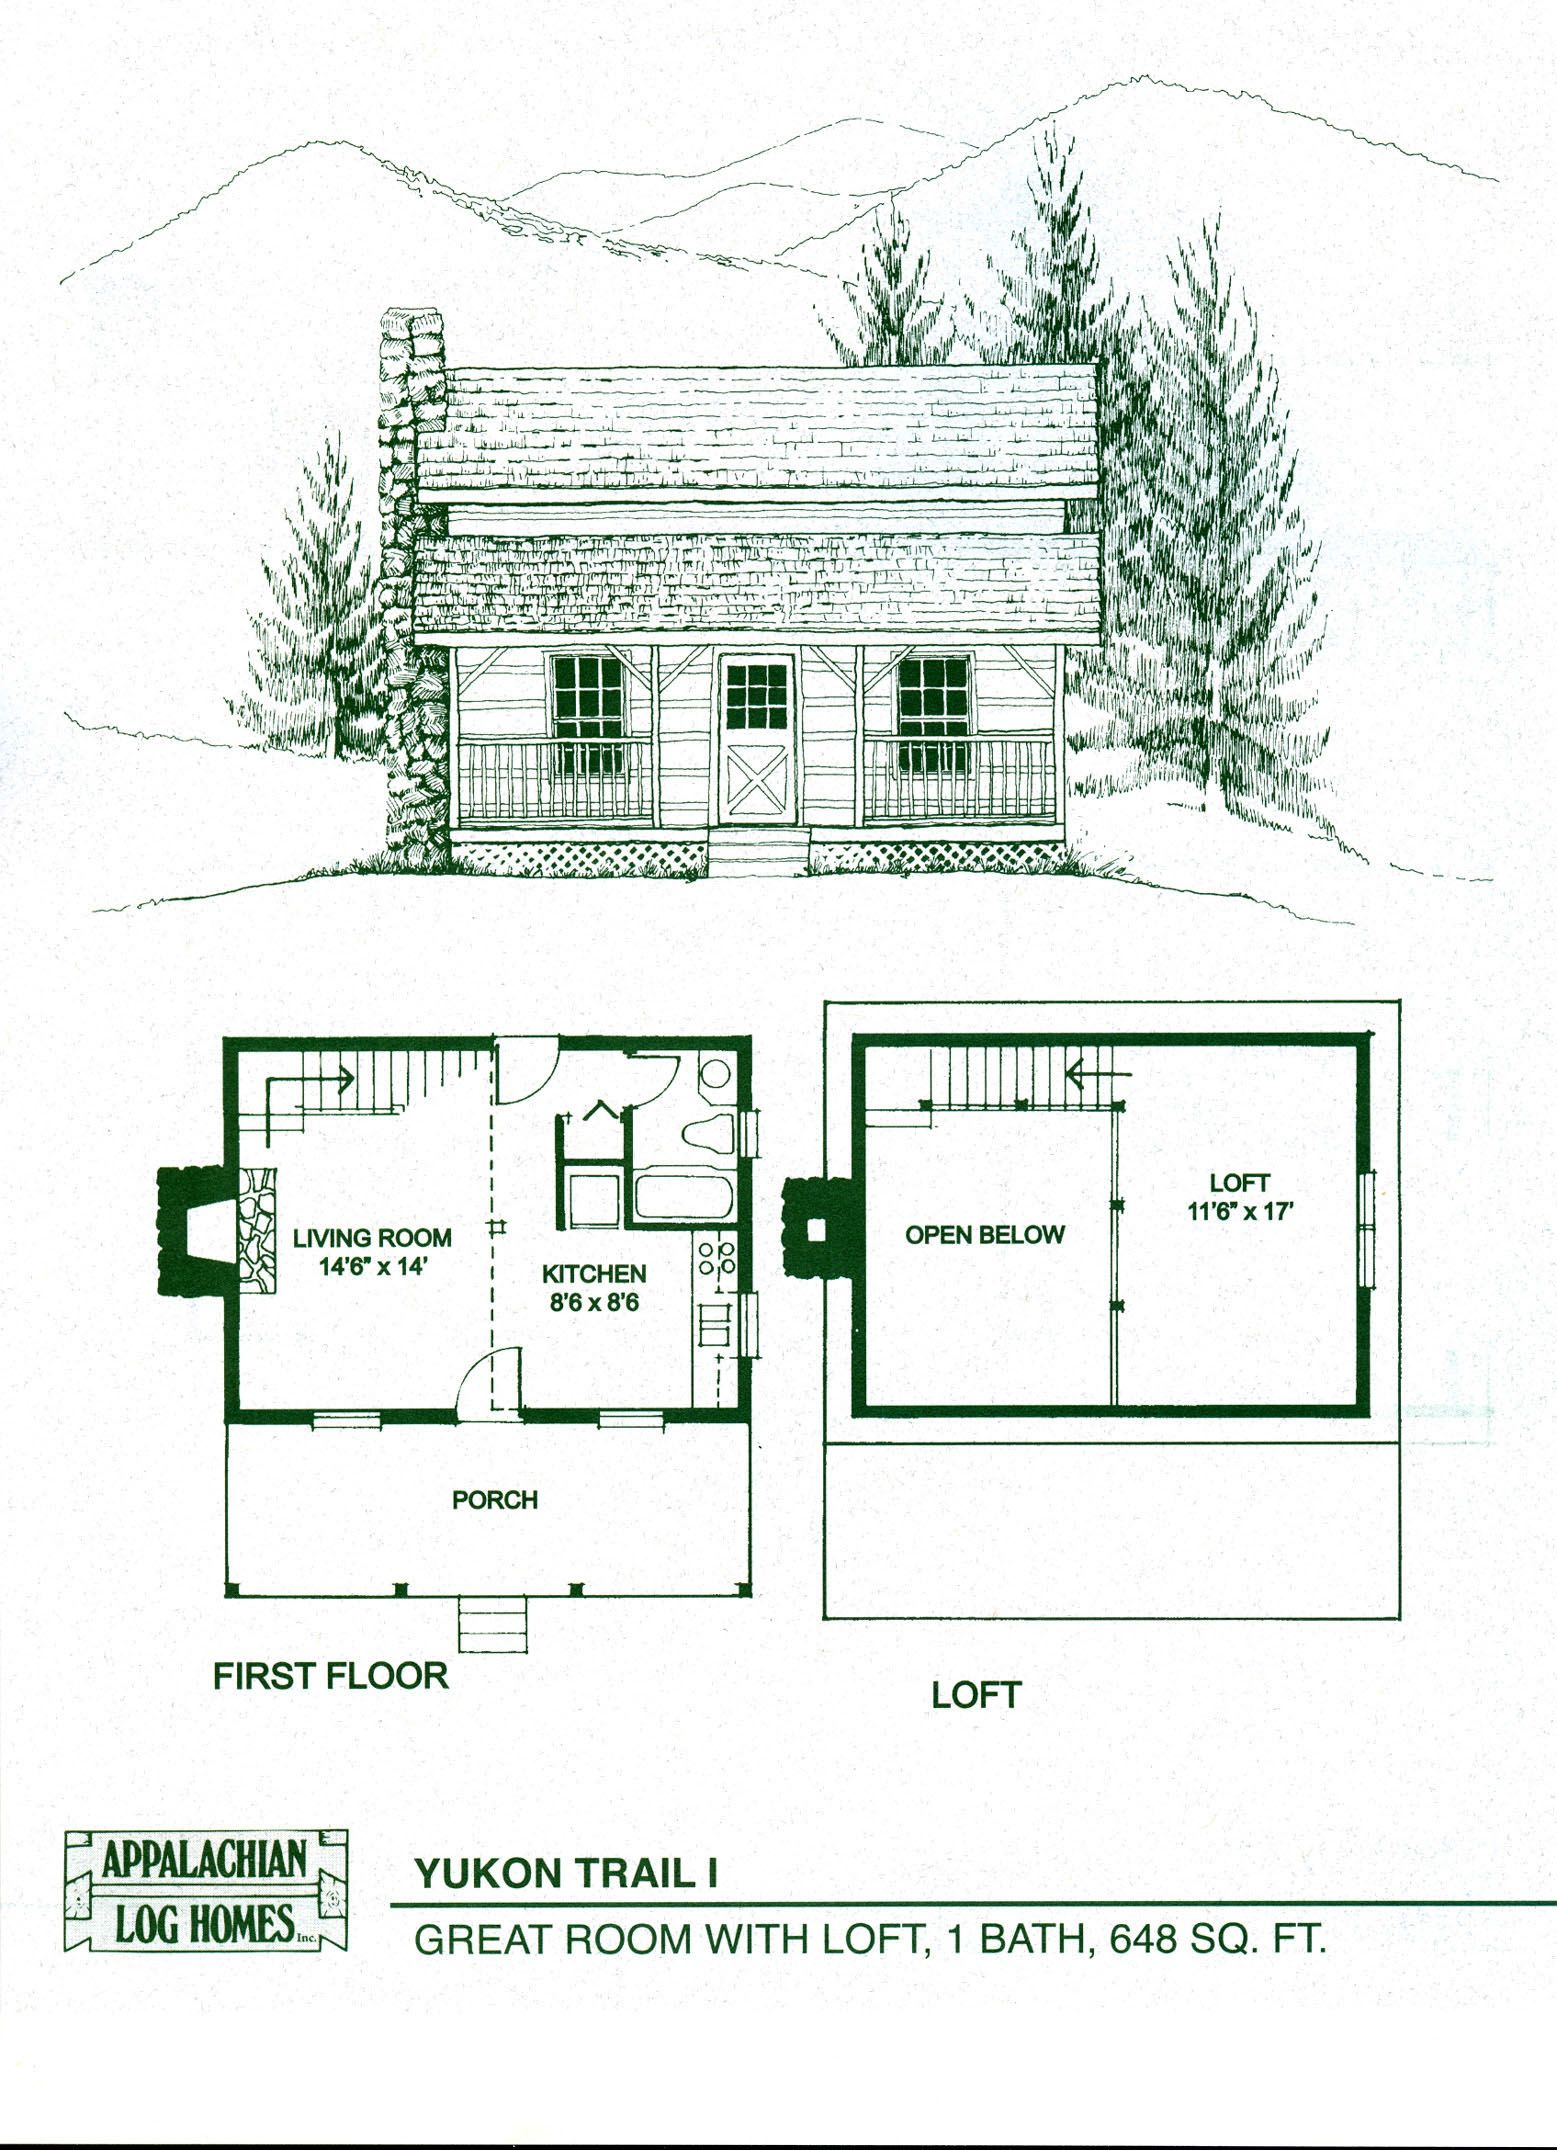 Log home floor plans log cabin kits appalachian log for Small lodge plans